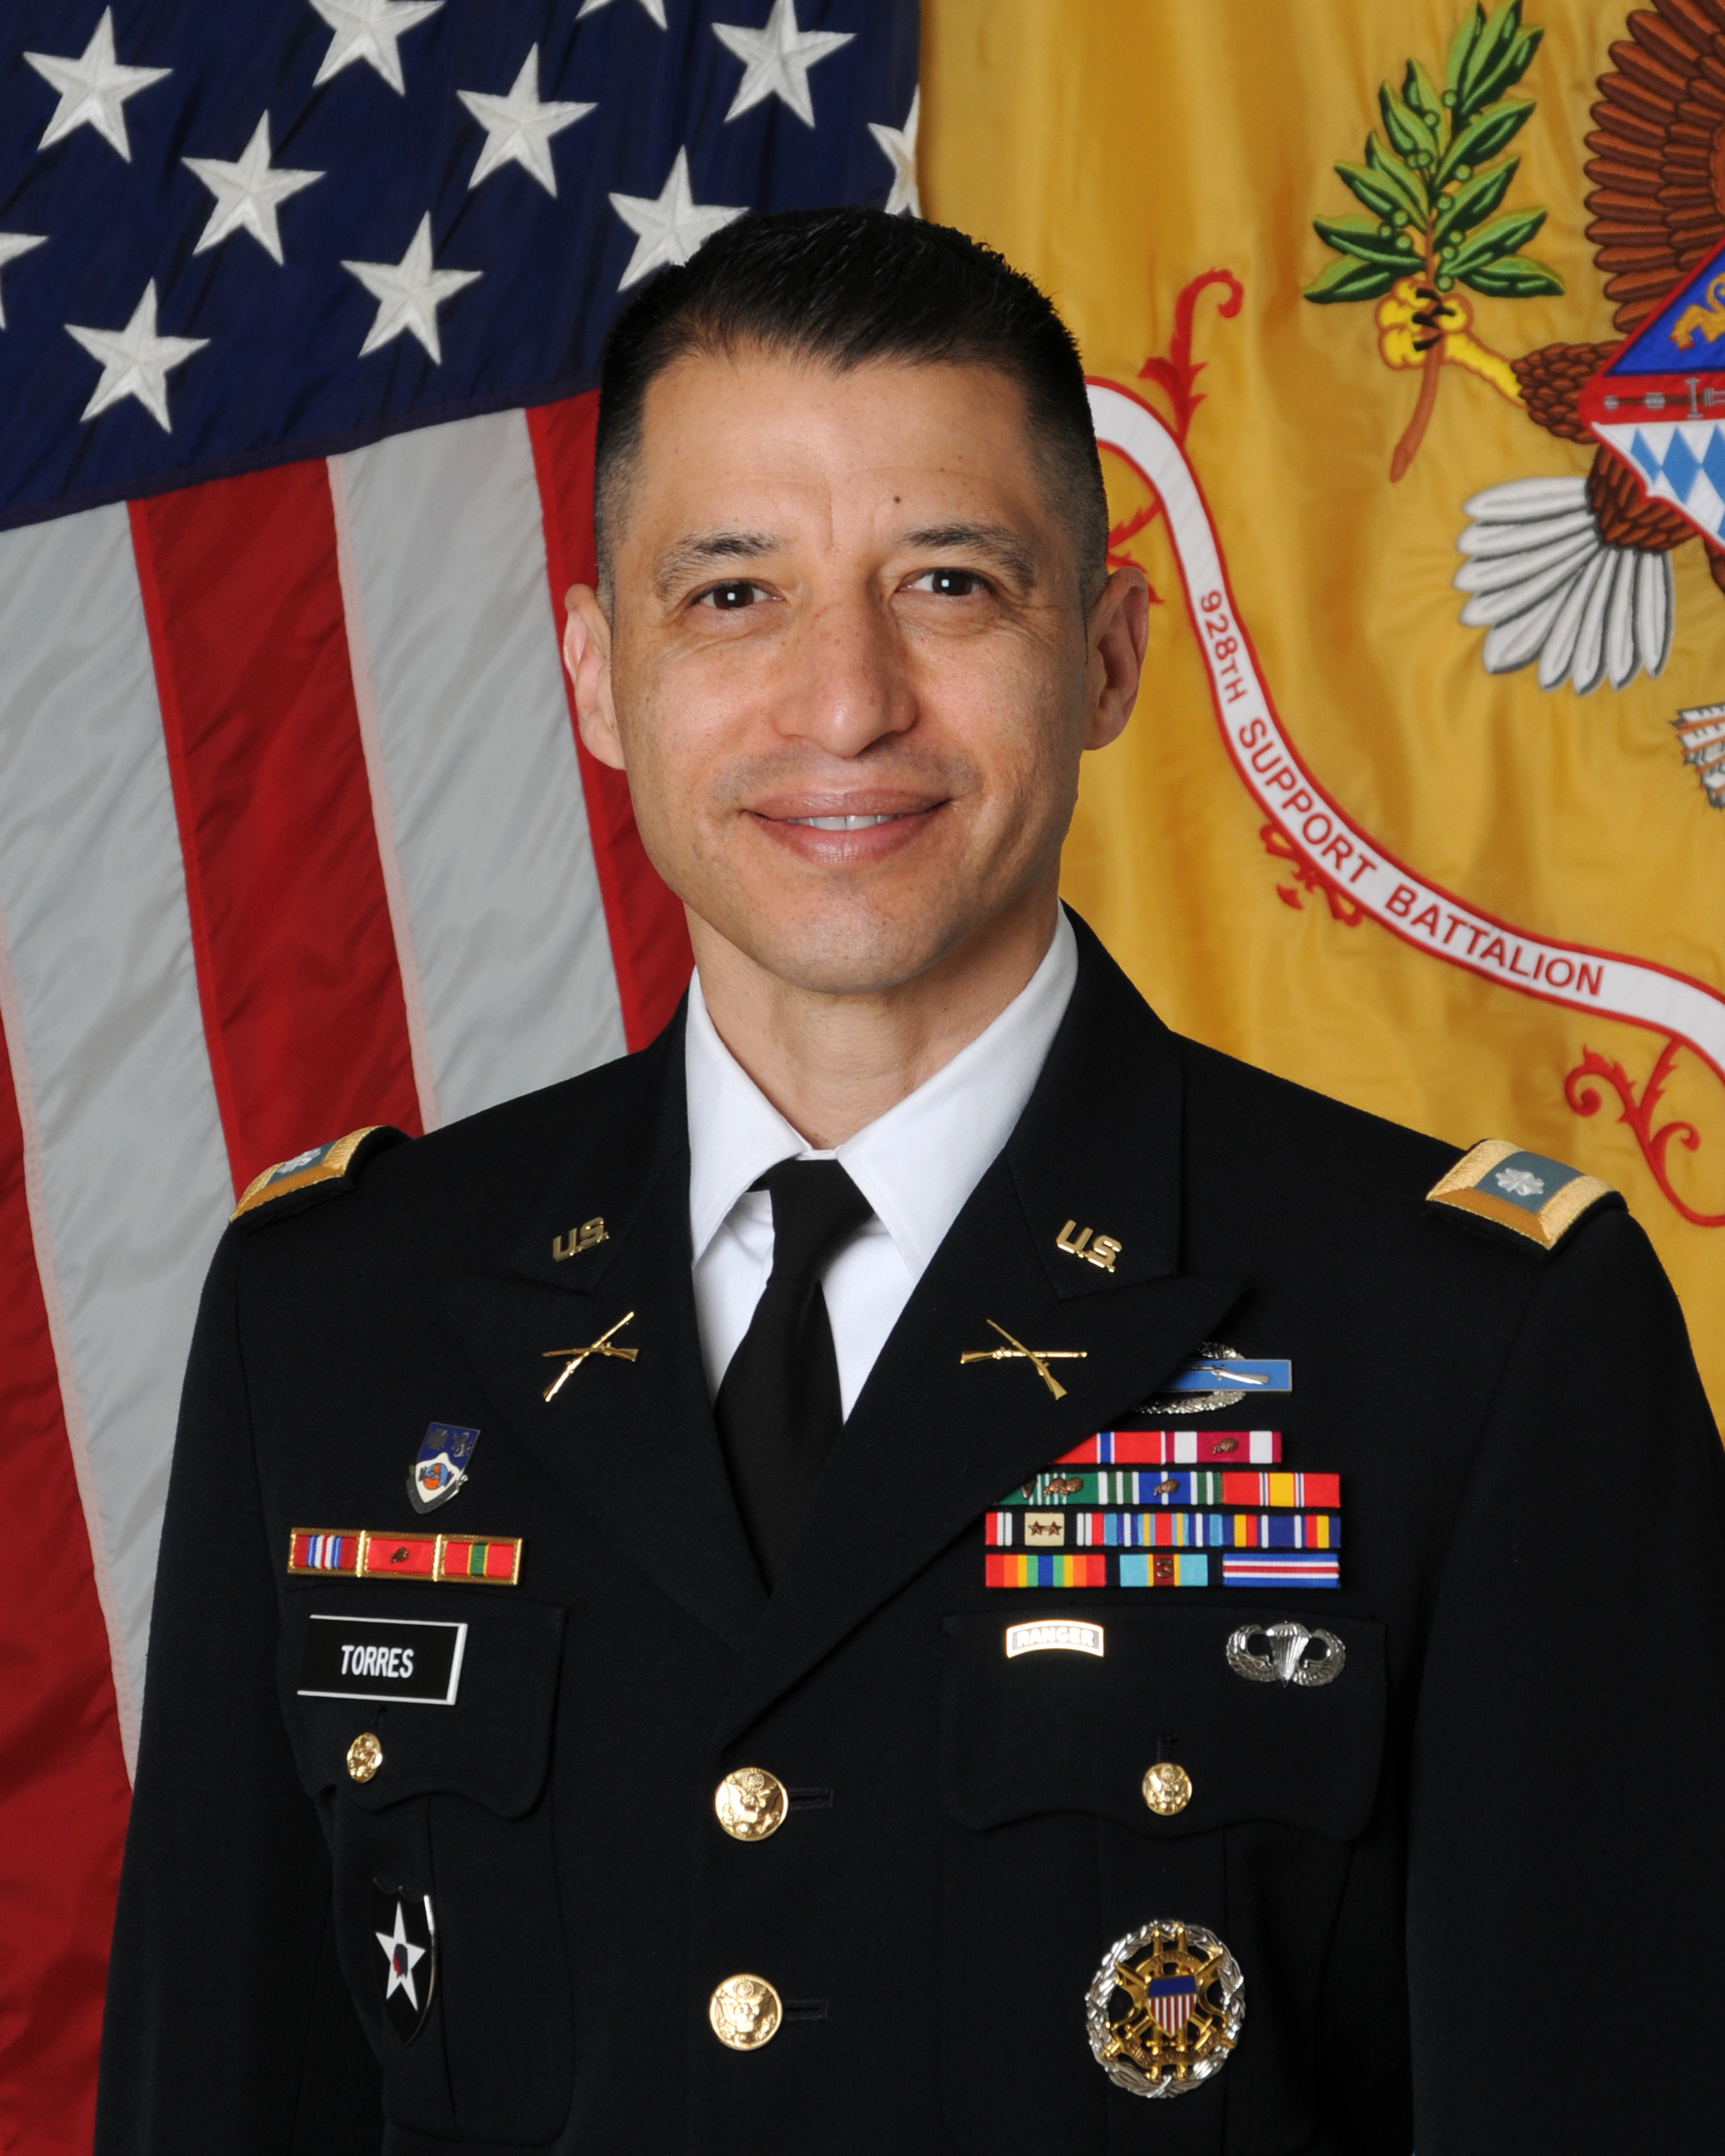 Lt. Col. Isaac Torres